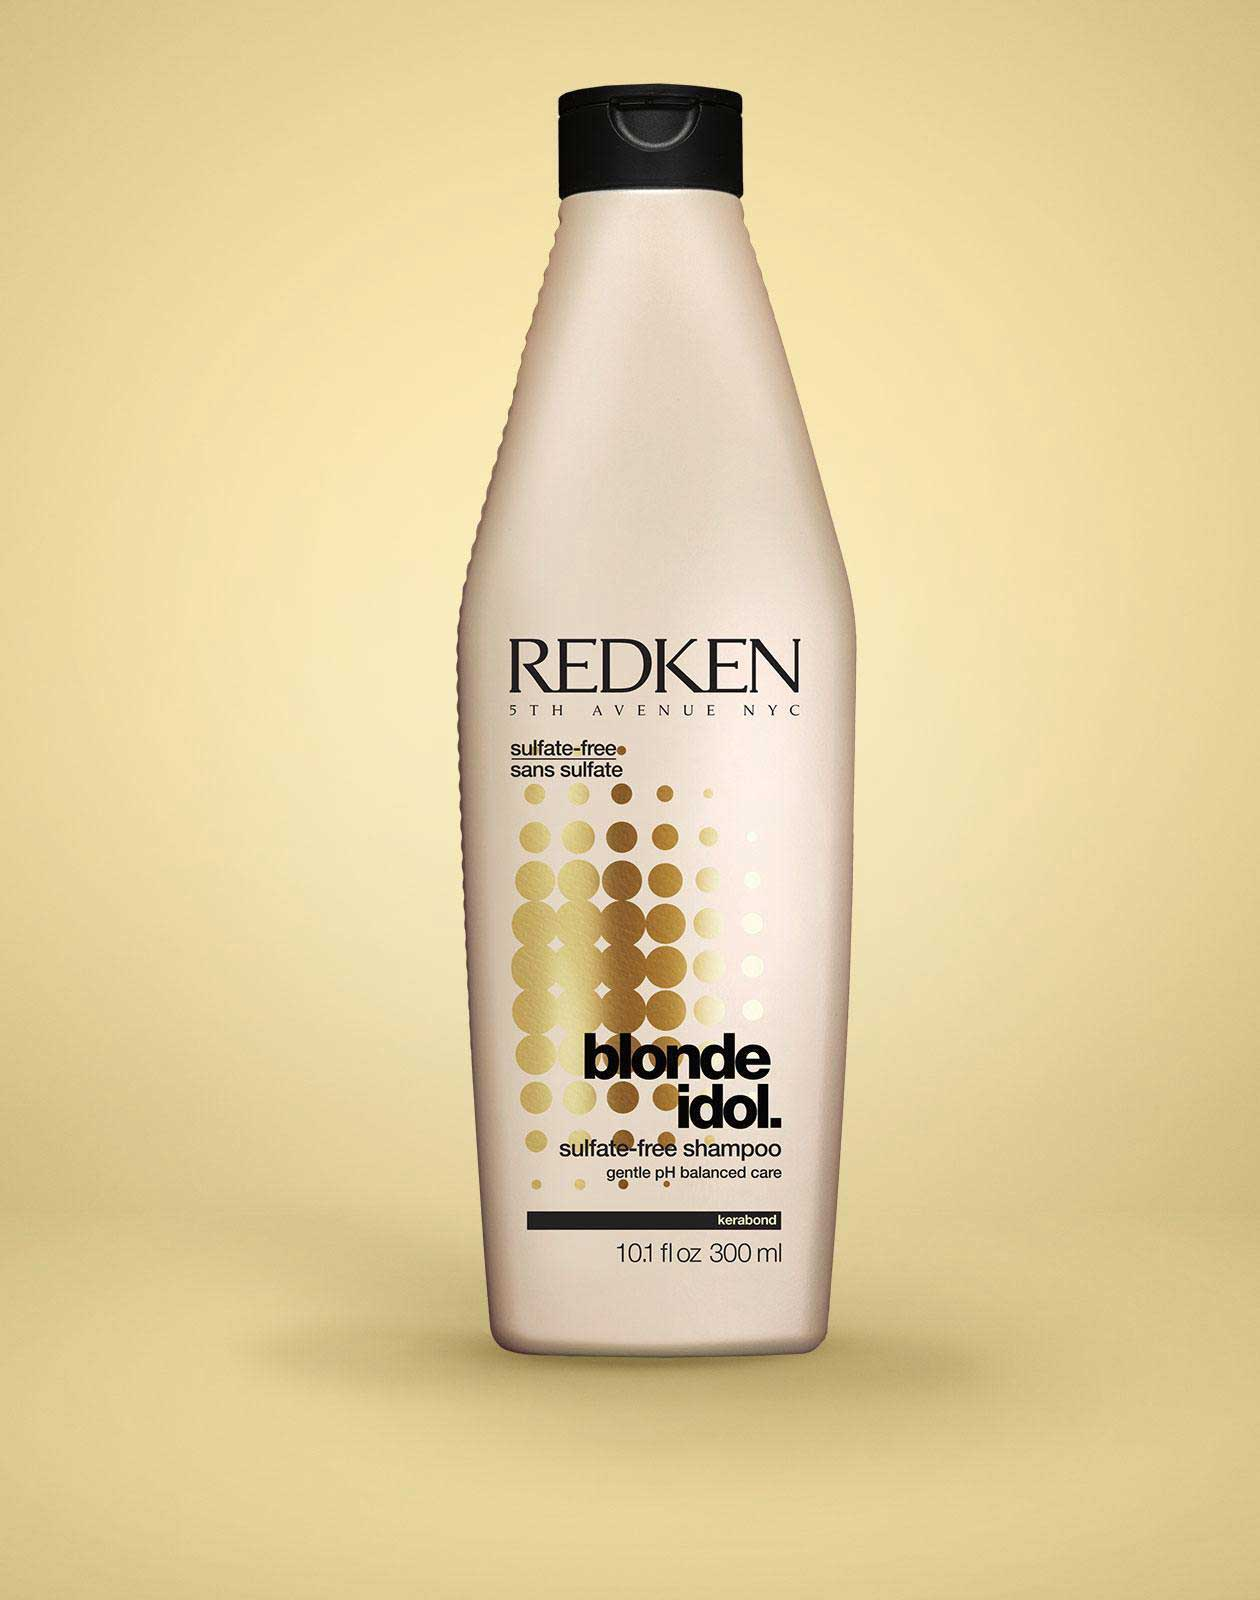 Sulfate Free Shampoo For Blonde Colored Hair Redken Idol